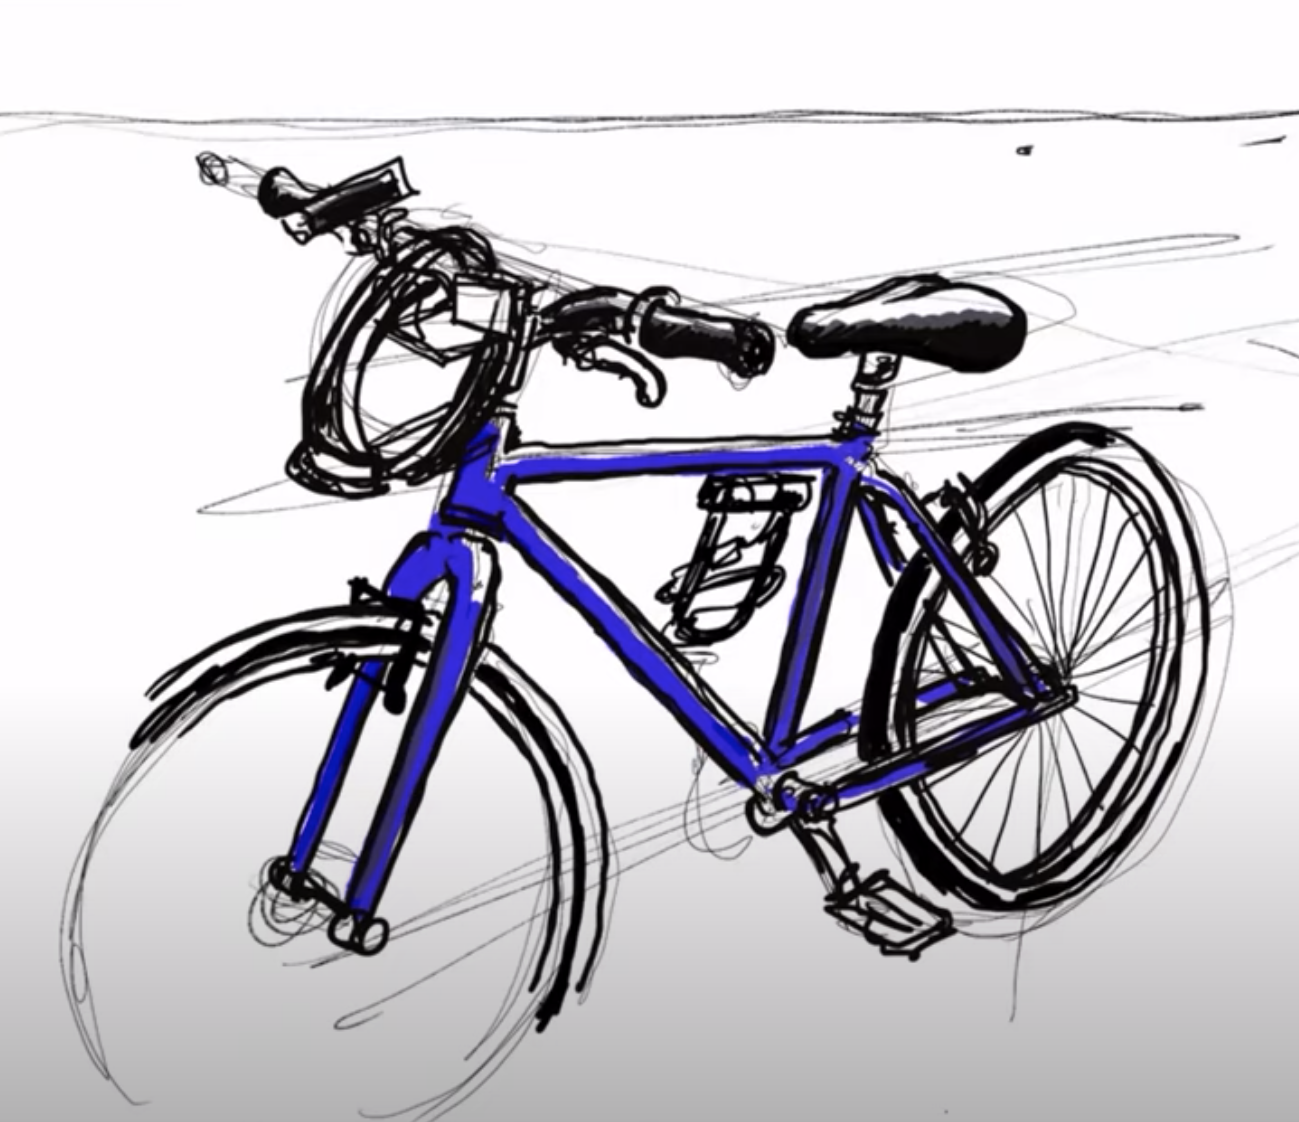 Image of bike drawn by Pete Scully.